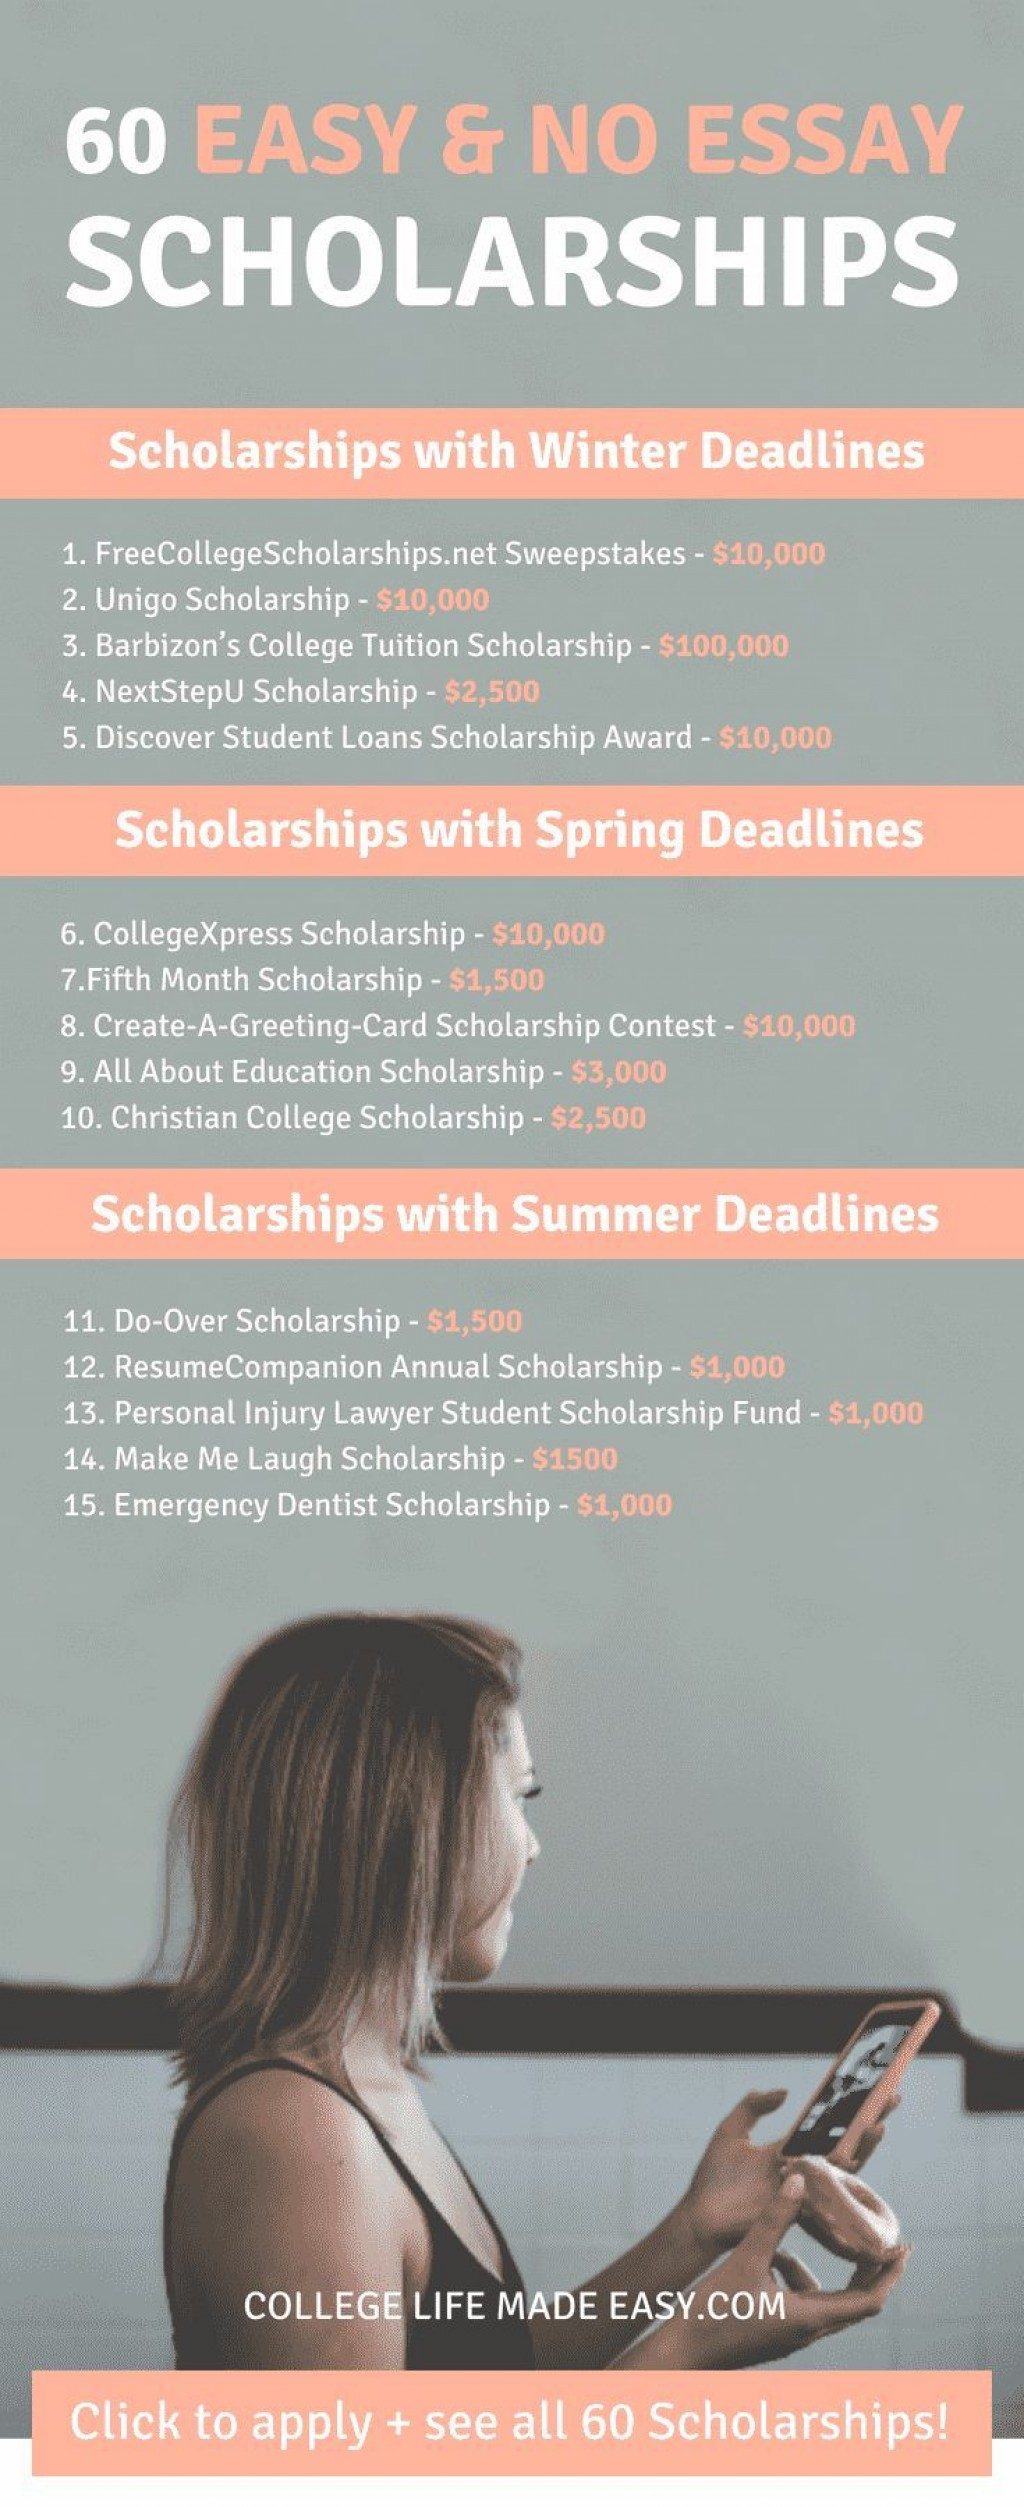 012 Essay Example Scholarship Awesome No For College Students Free Scholarships Required Hispanic Large